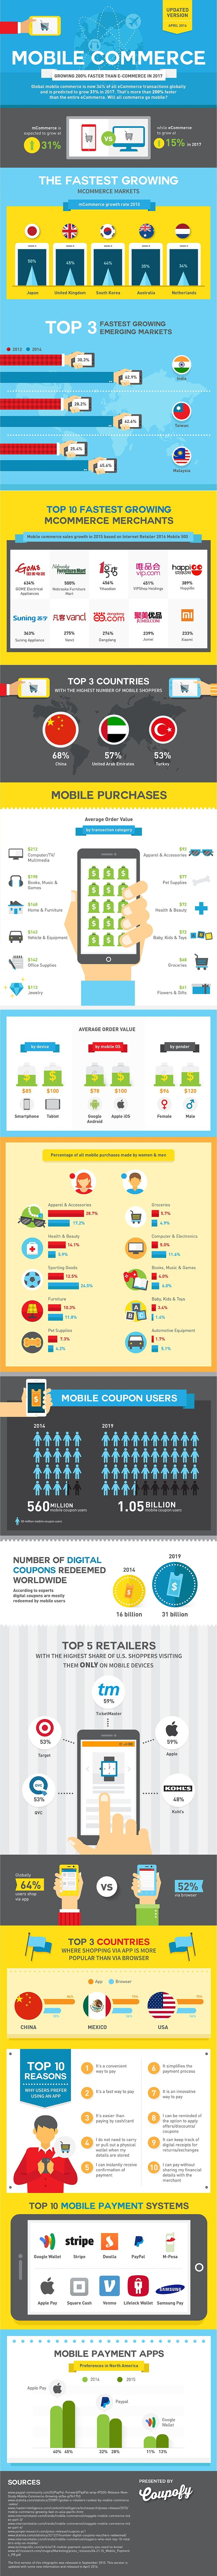 Mobile Commerce in 2017 - Simple Ideas Marketing